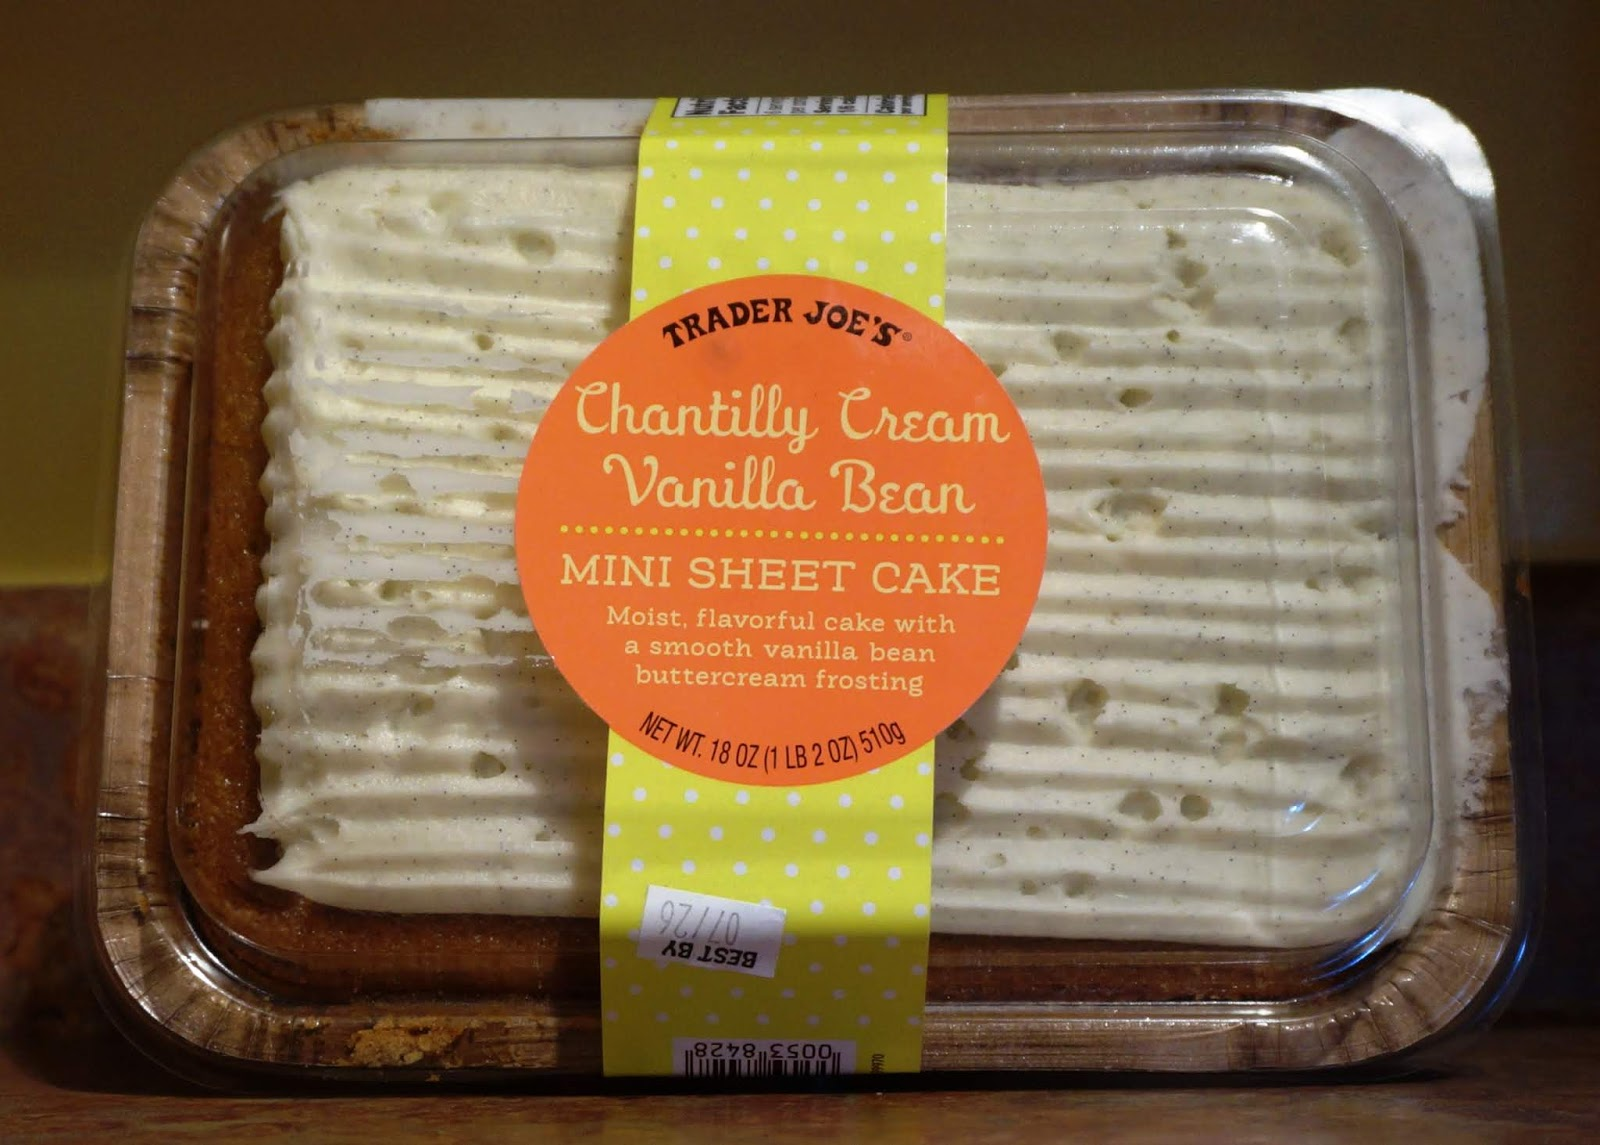 Exploring Trader Joe S Trader Joe S Chantilly Cream Vanilla Bean Mini Sheet Cake